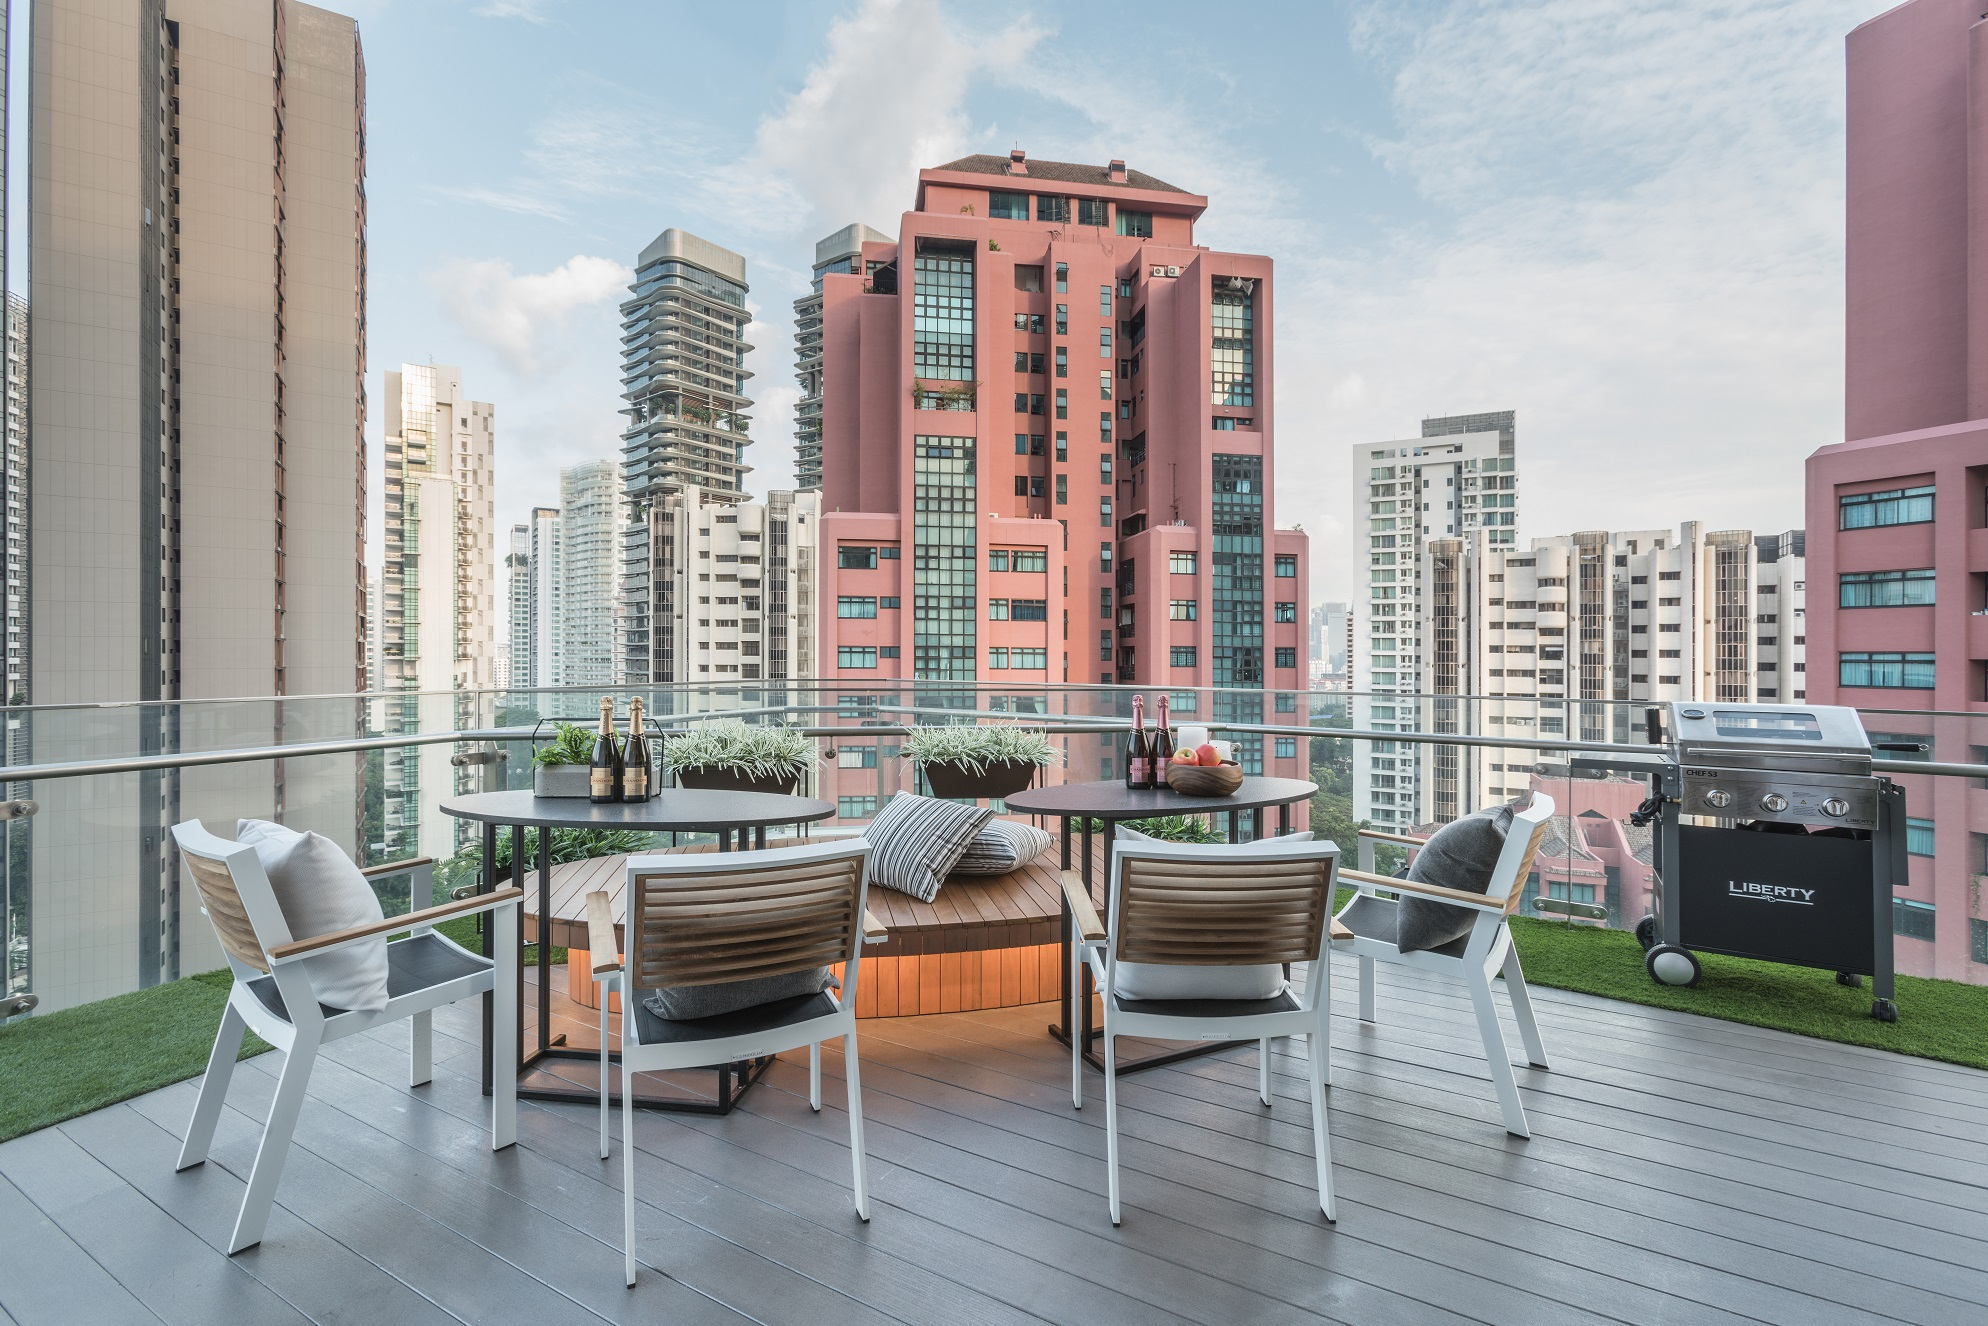 CO-LIVING - Co-living needs to be in locations that attract millennial expatriates. That's why city centres and city fringe locations work best, says Cai (Photo: Koh Brothers Group)